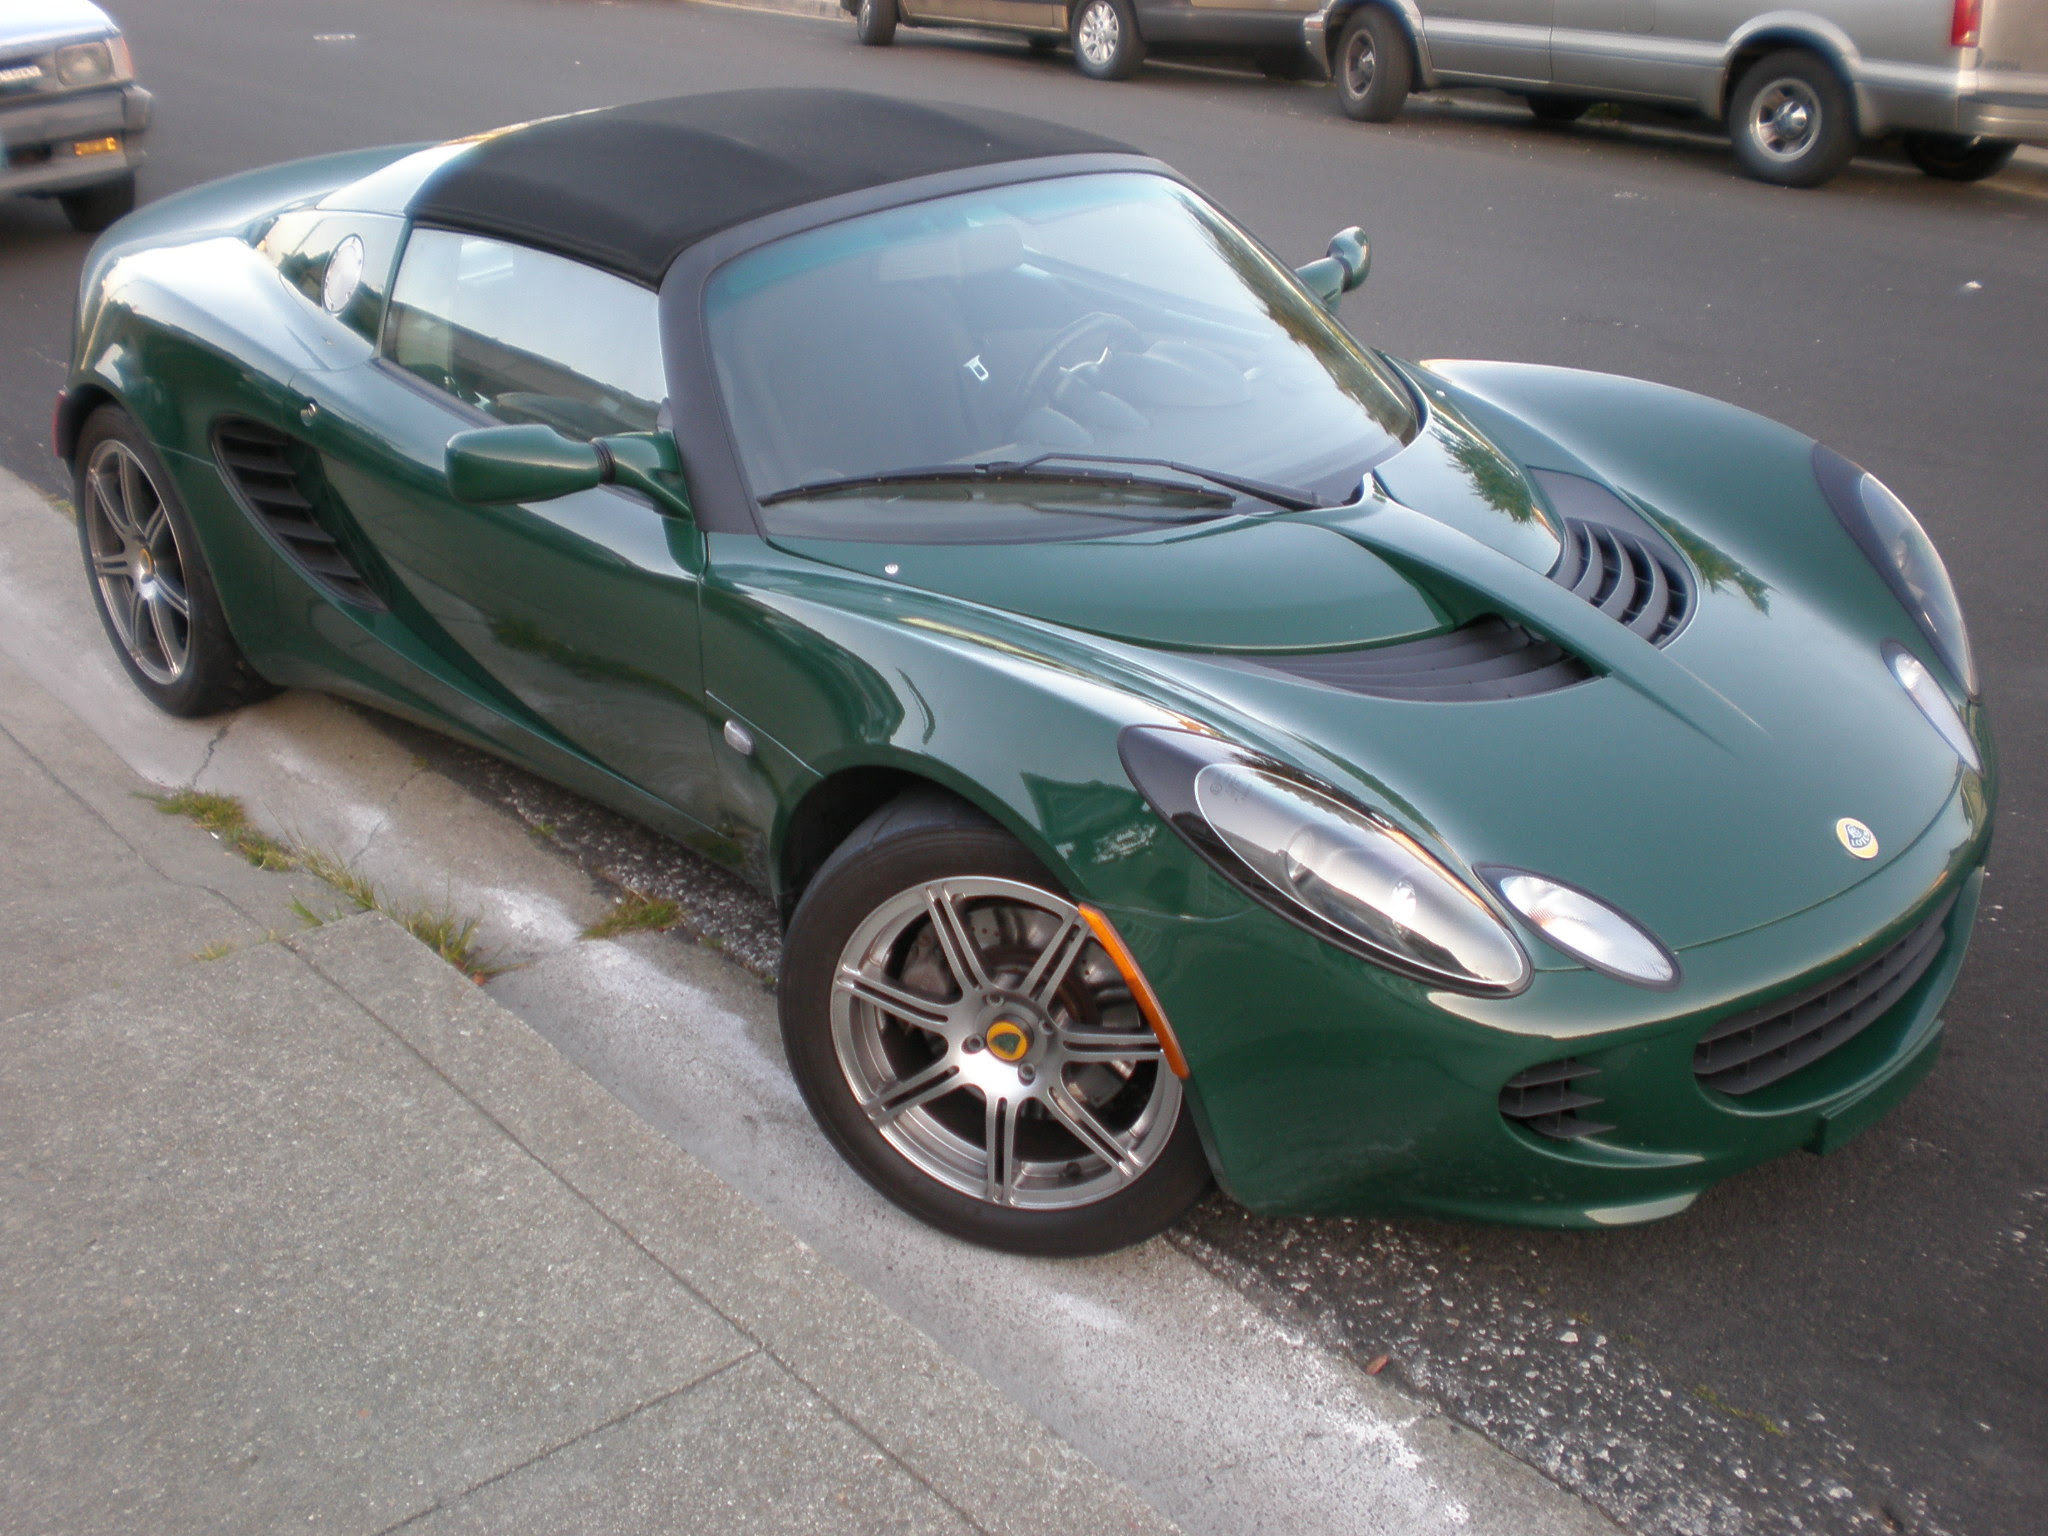 Lotus Elise Review And Photos Images, Photos, Reviews